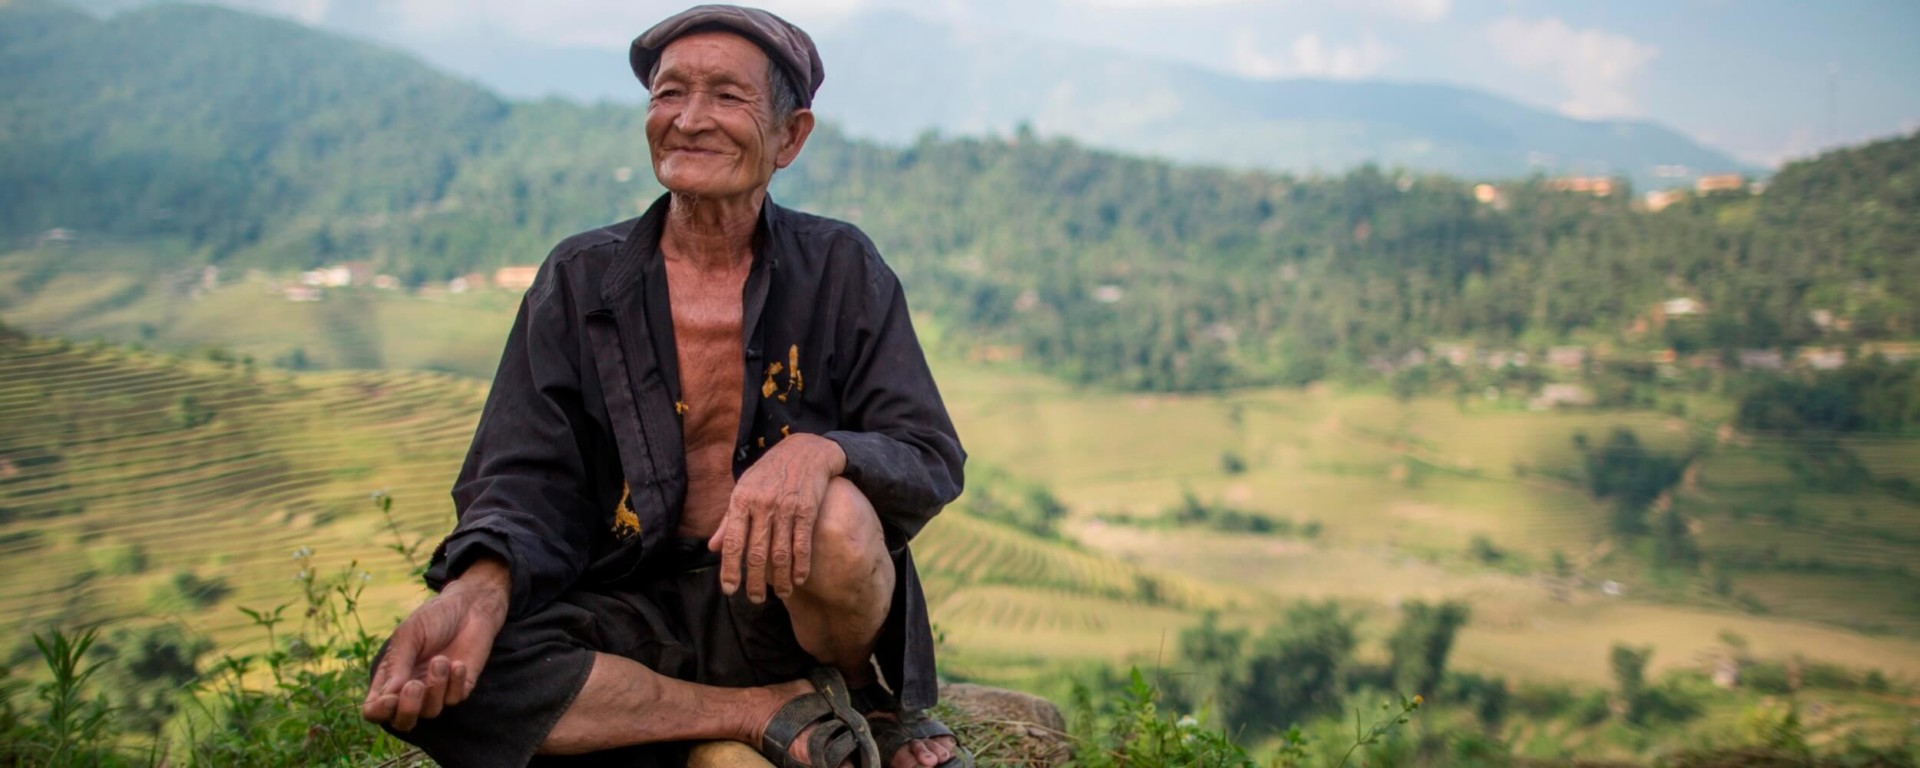 Black Hmong minority old man